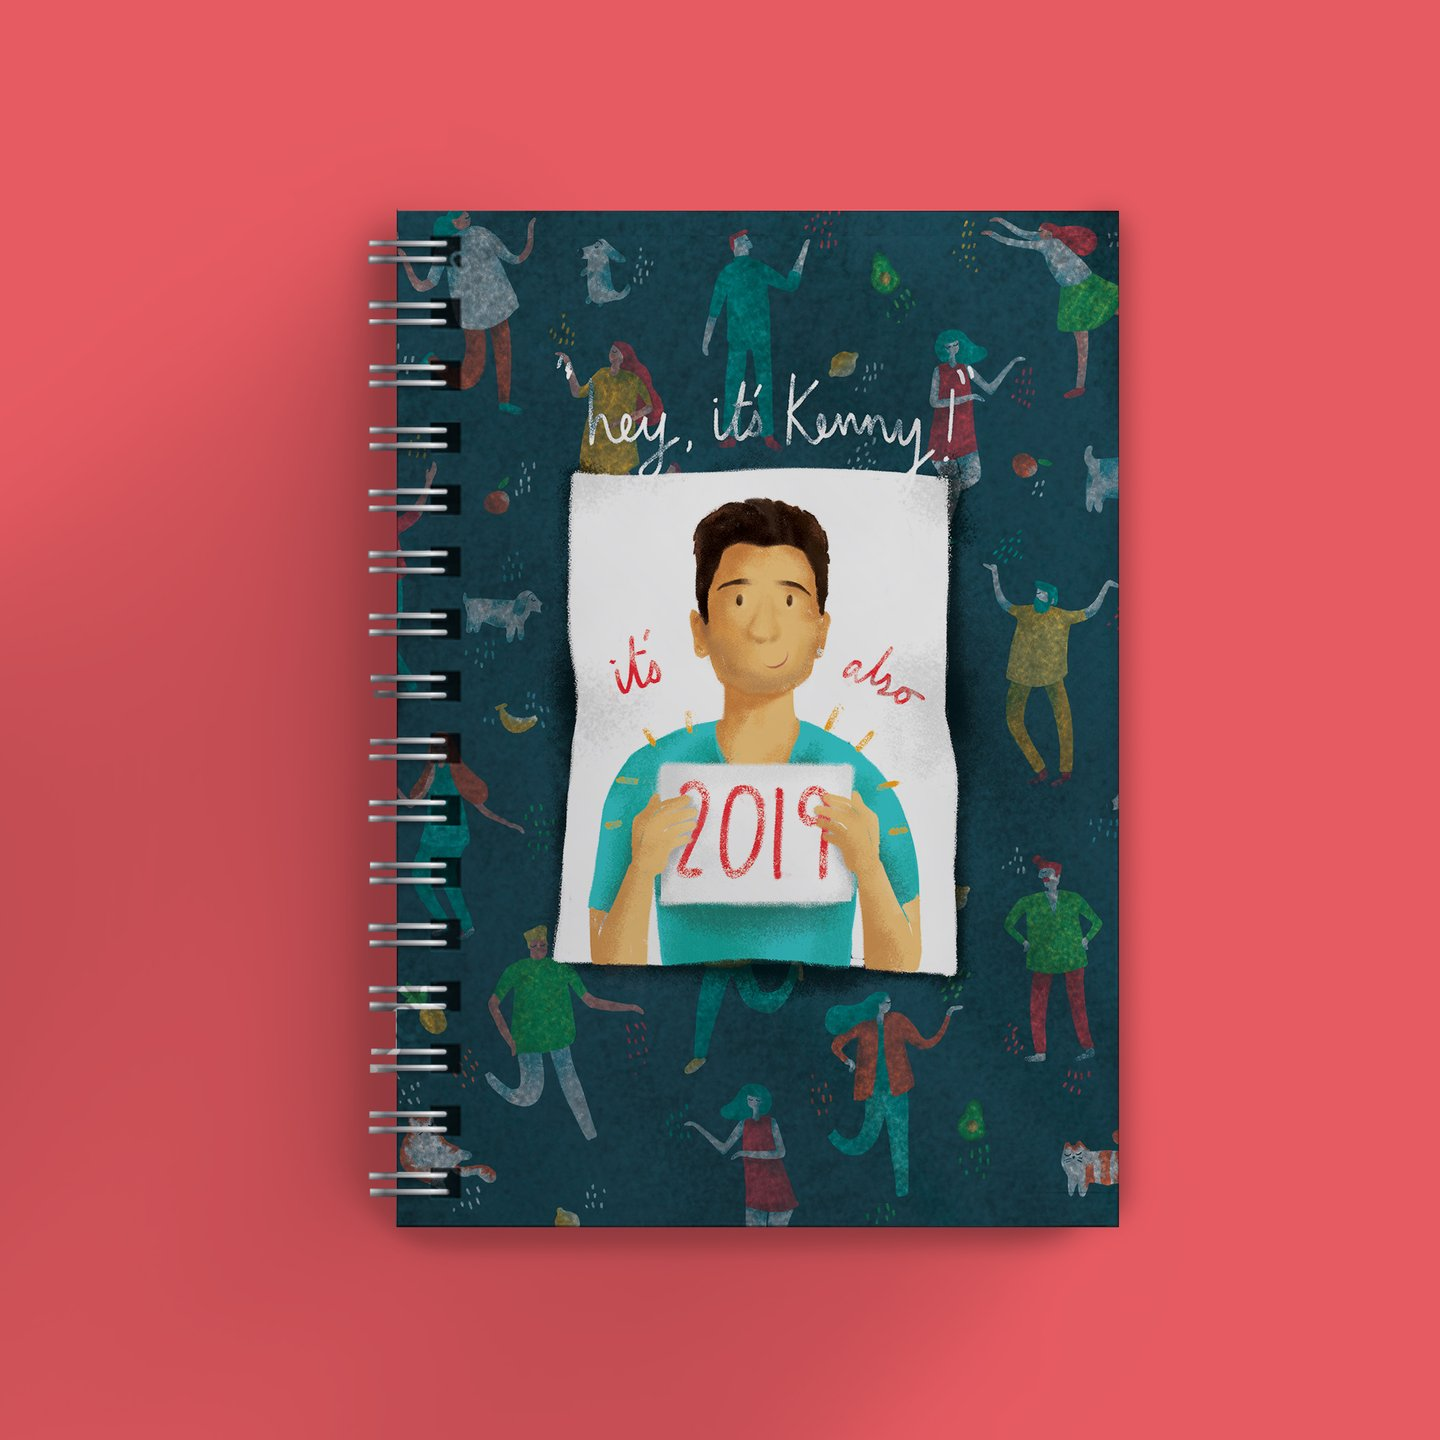 Kenny Sebatian Journal/Planner - ₹1499